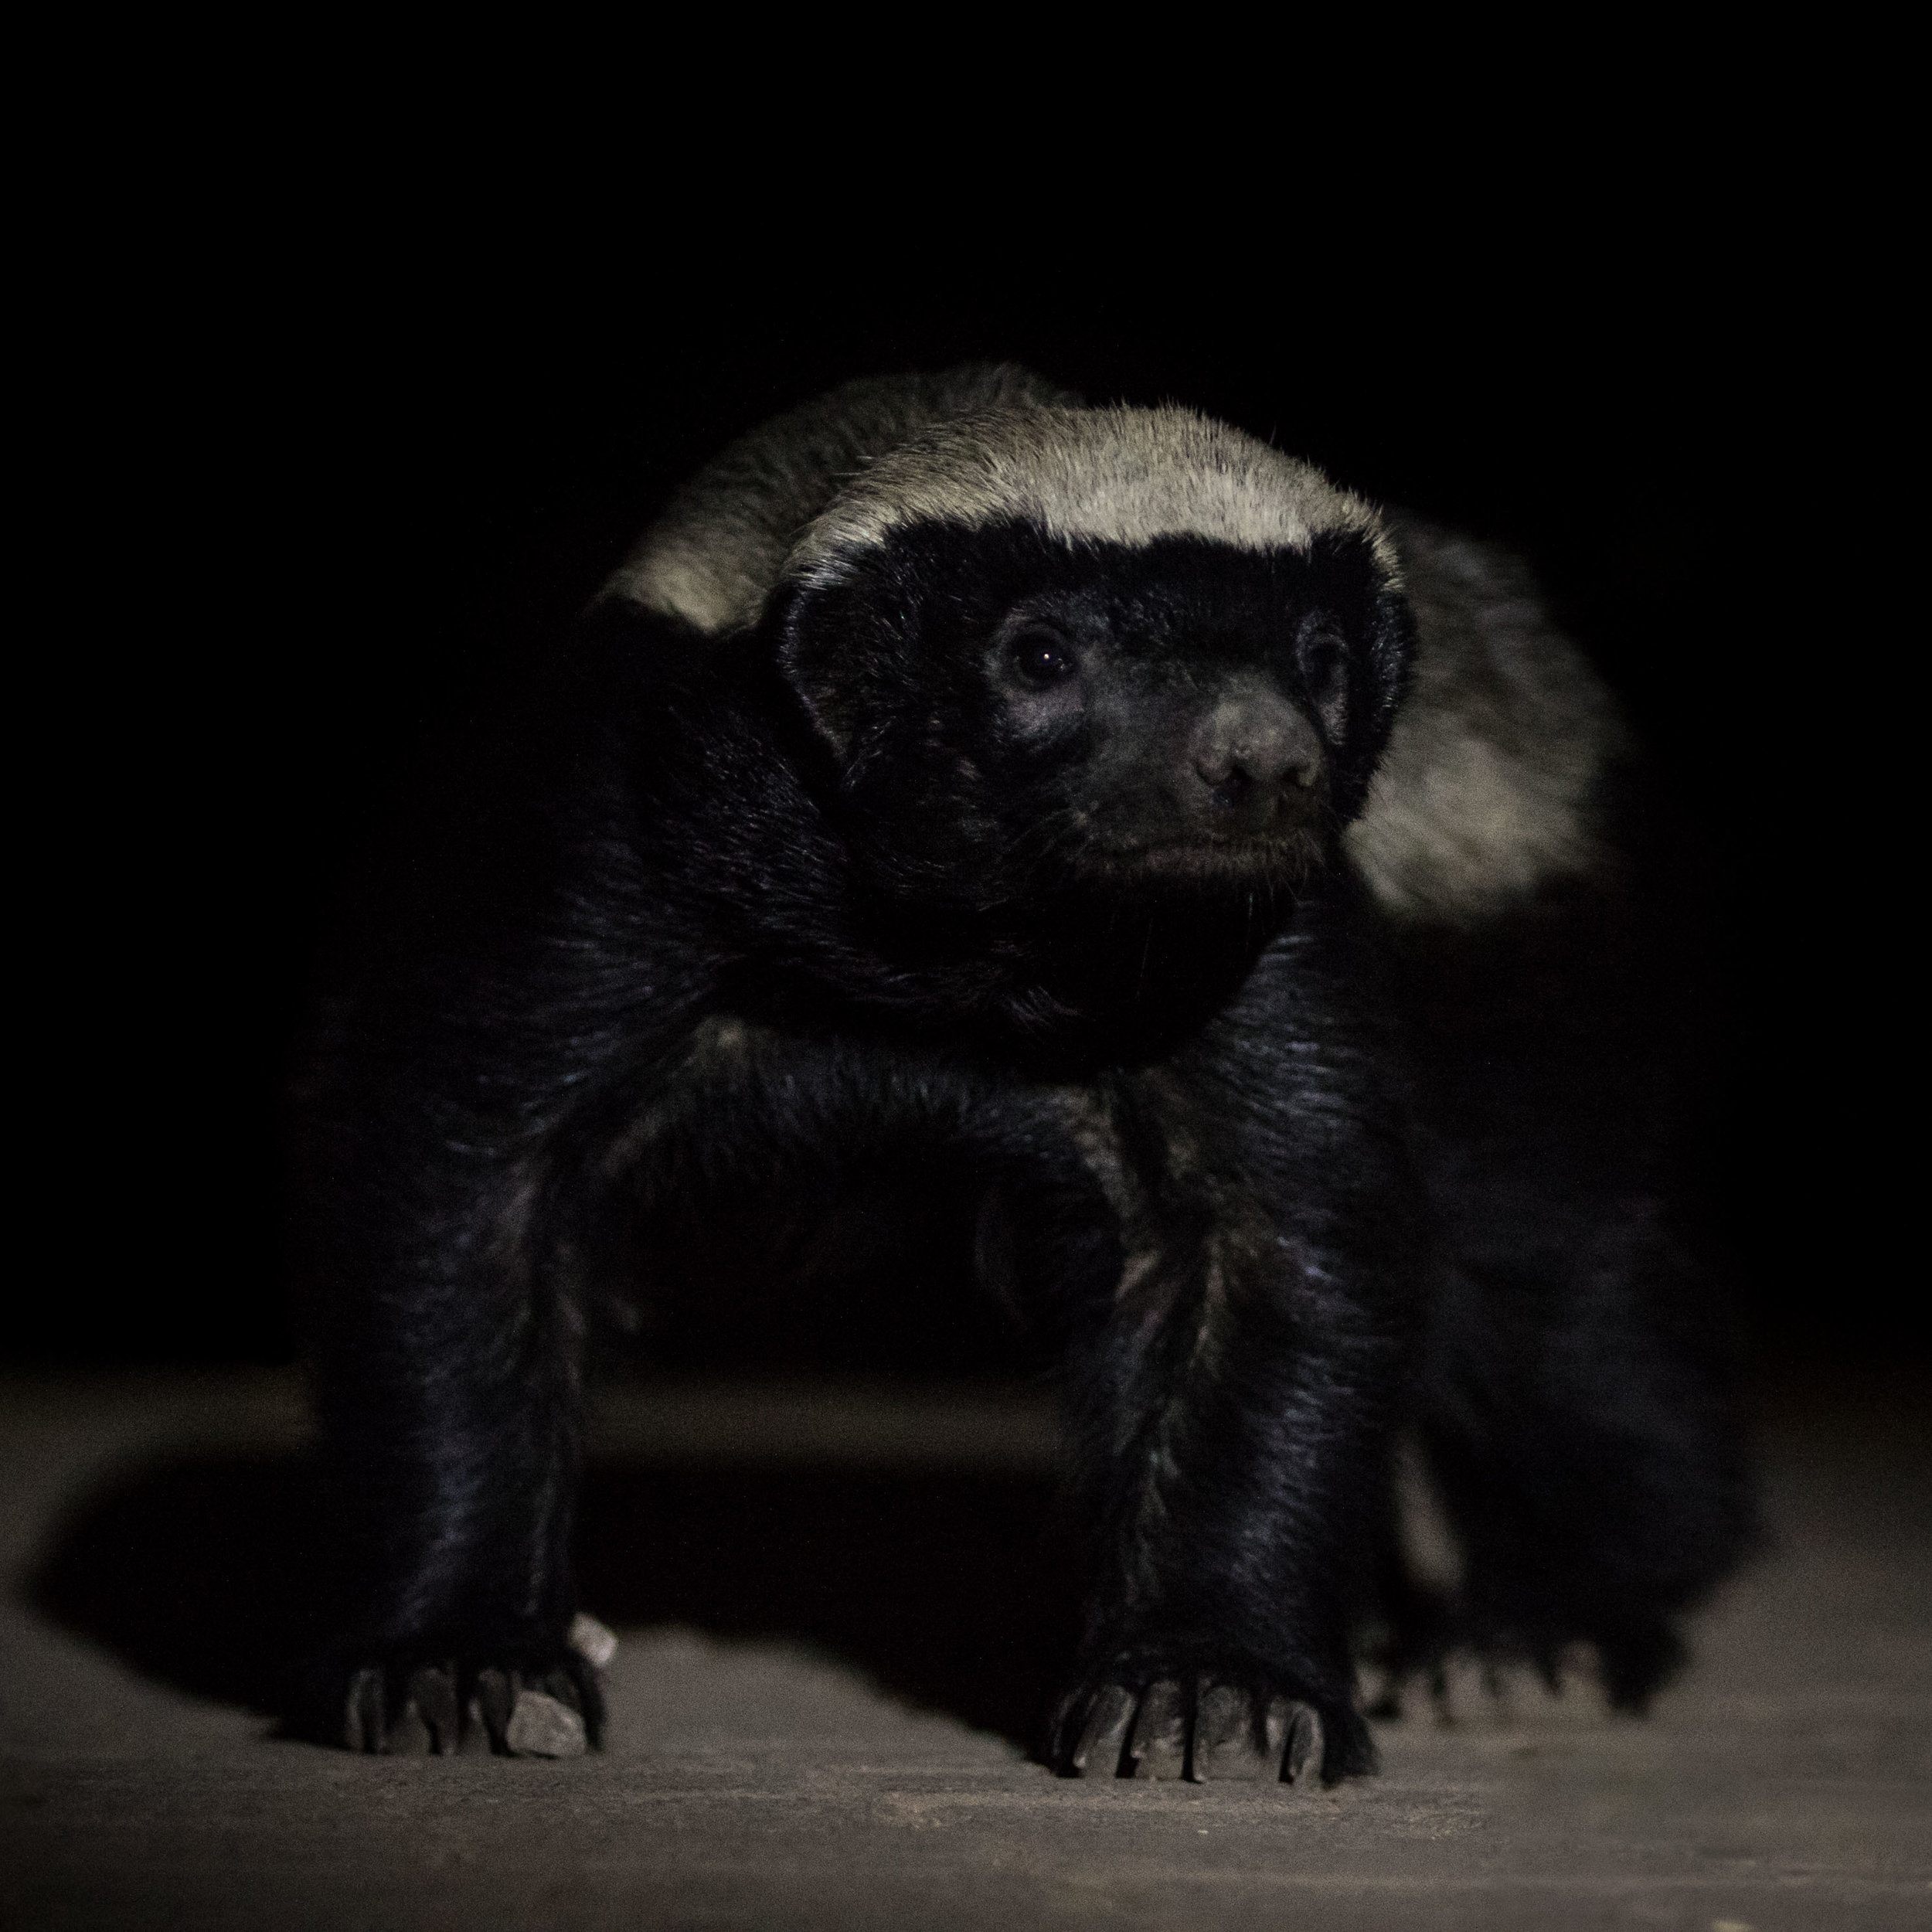 A nocturnal honey badger inspects its surroundings.